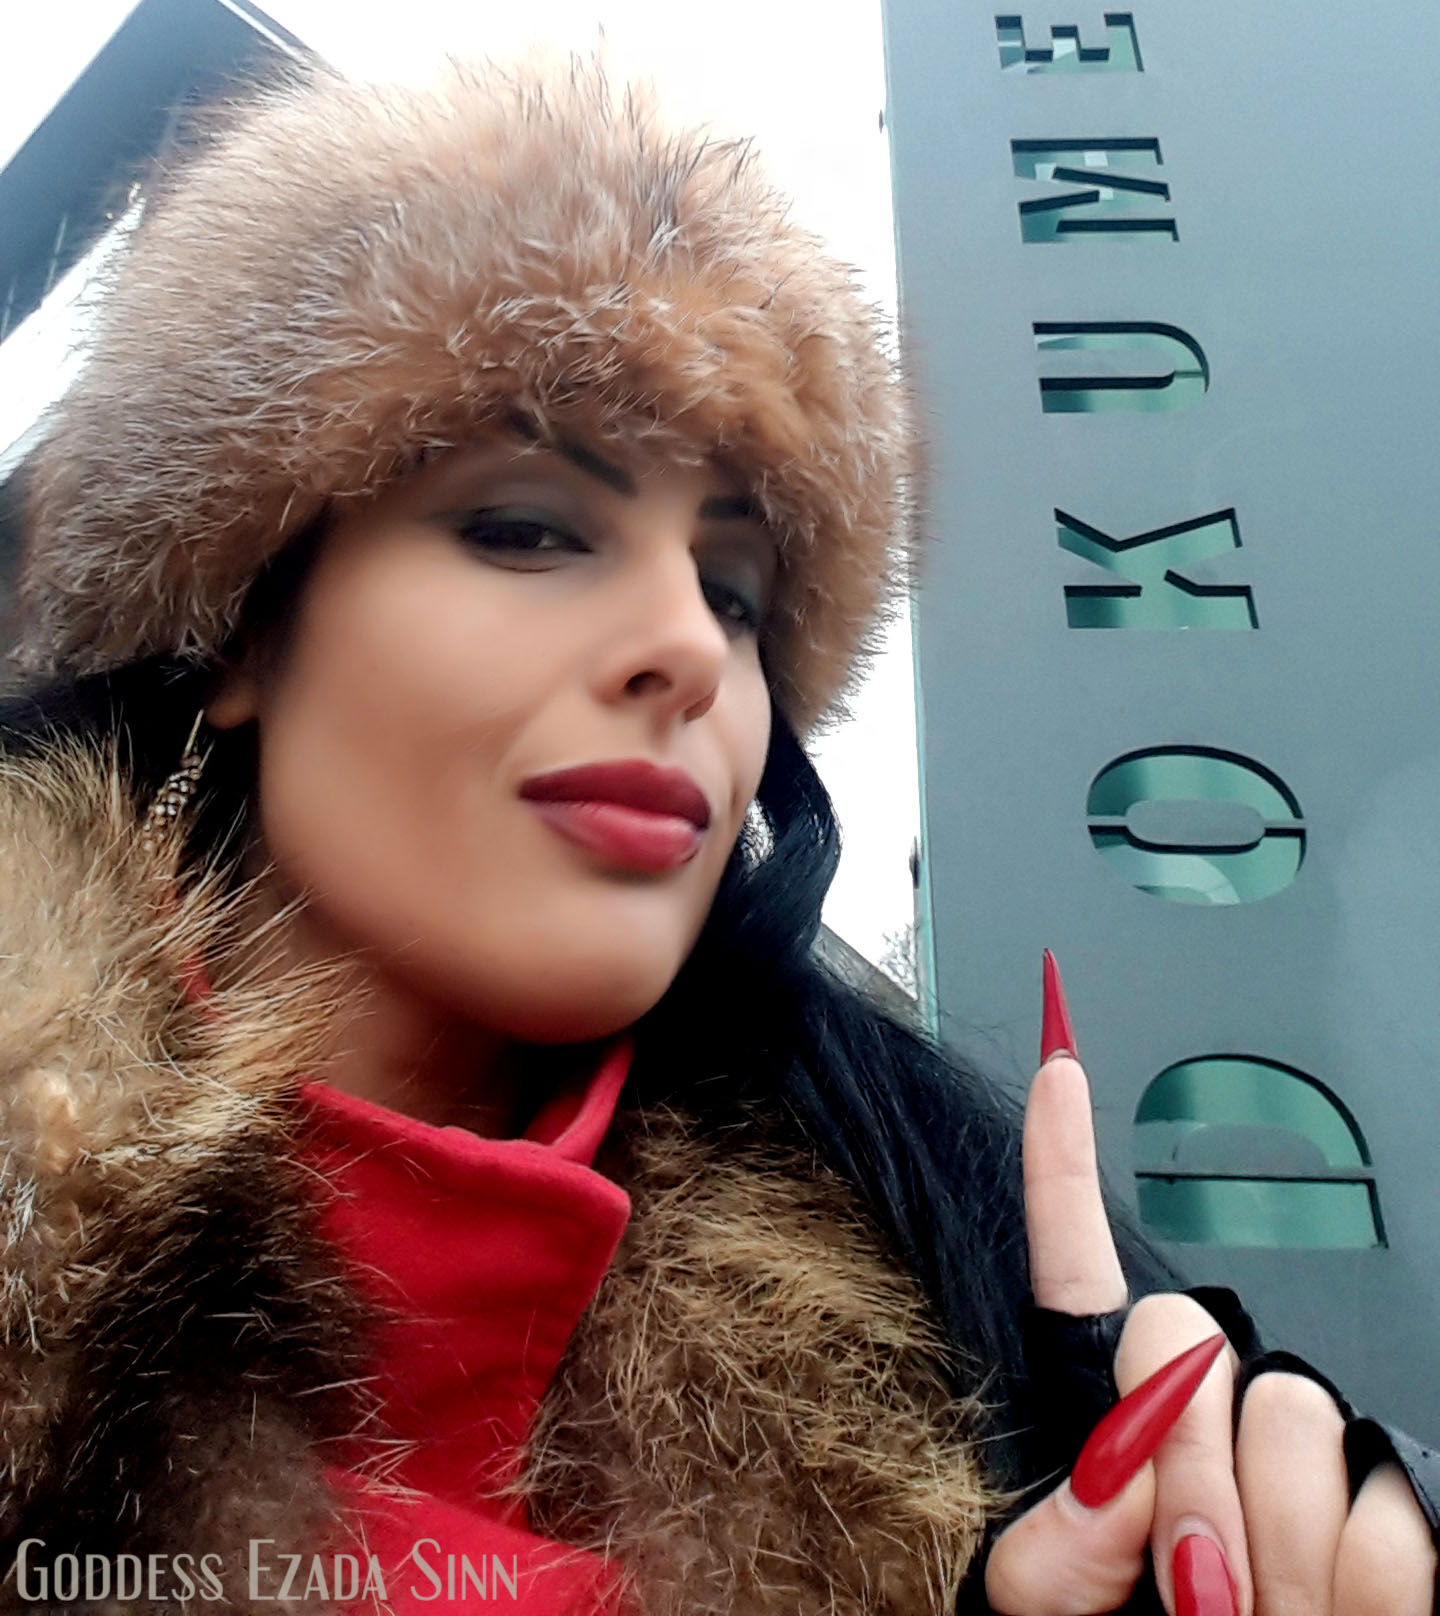 Goddess Ezada Sinn fur scam fake profile email address sessions